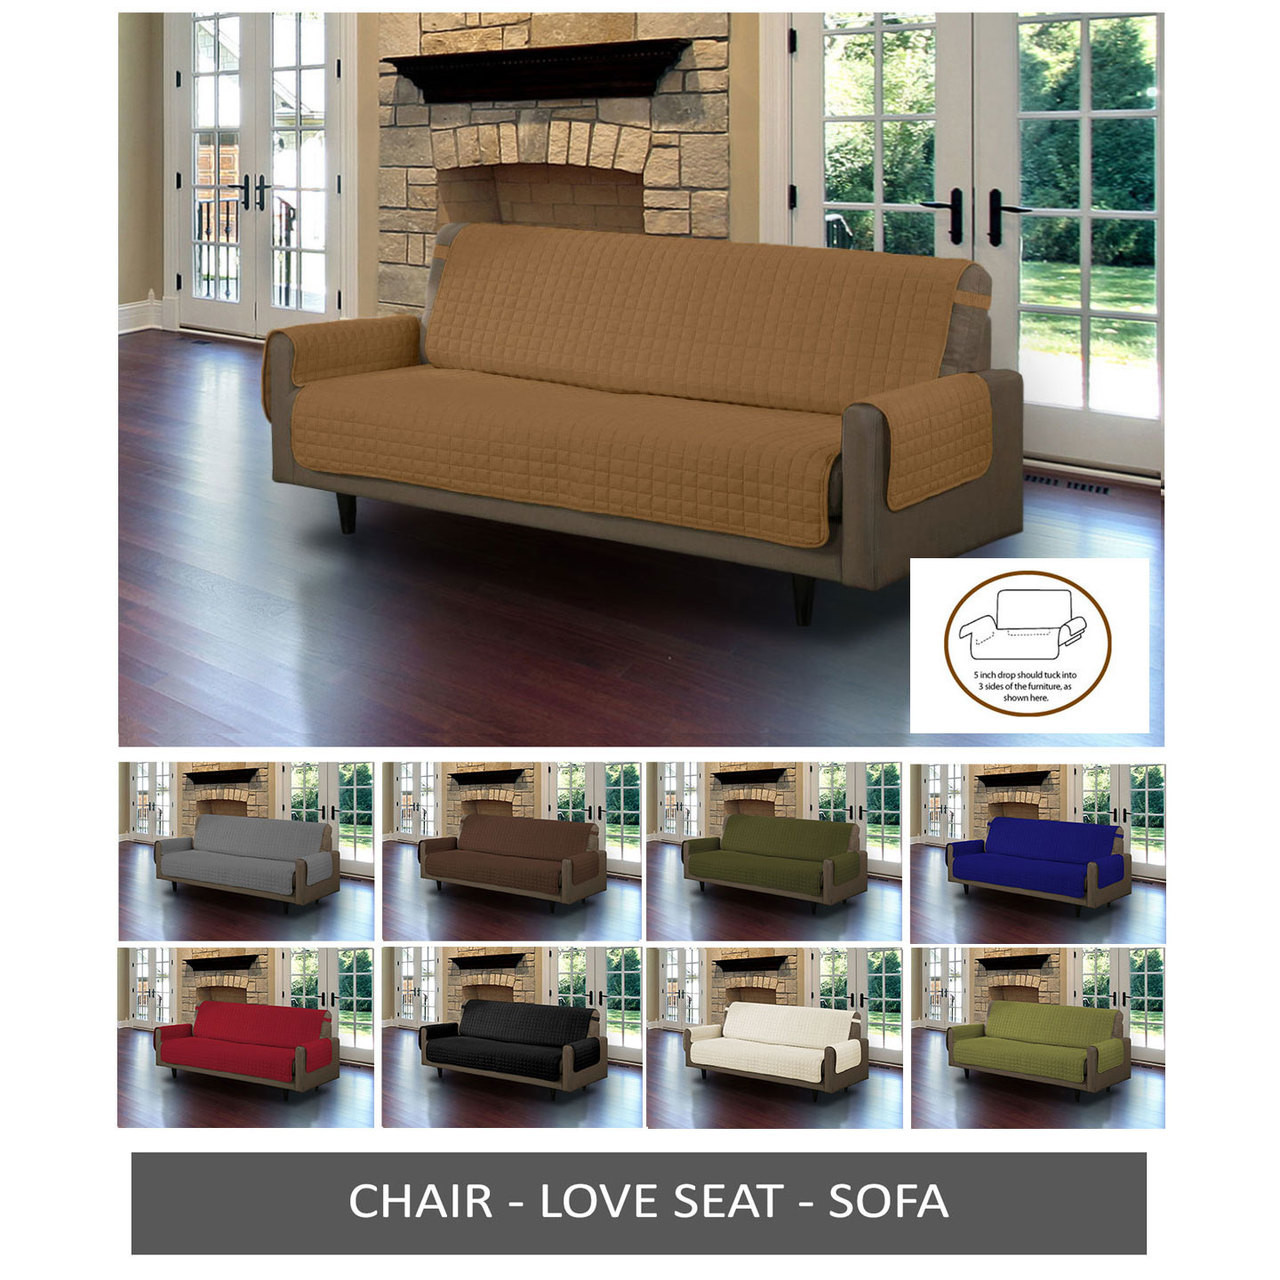 quilted microsuede sofa cover diy narrow table furniture protector microfiber pet dog couch with tucks strap